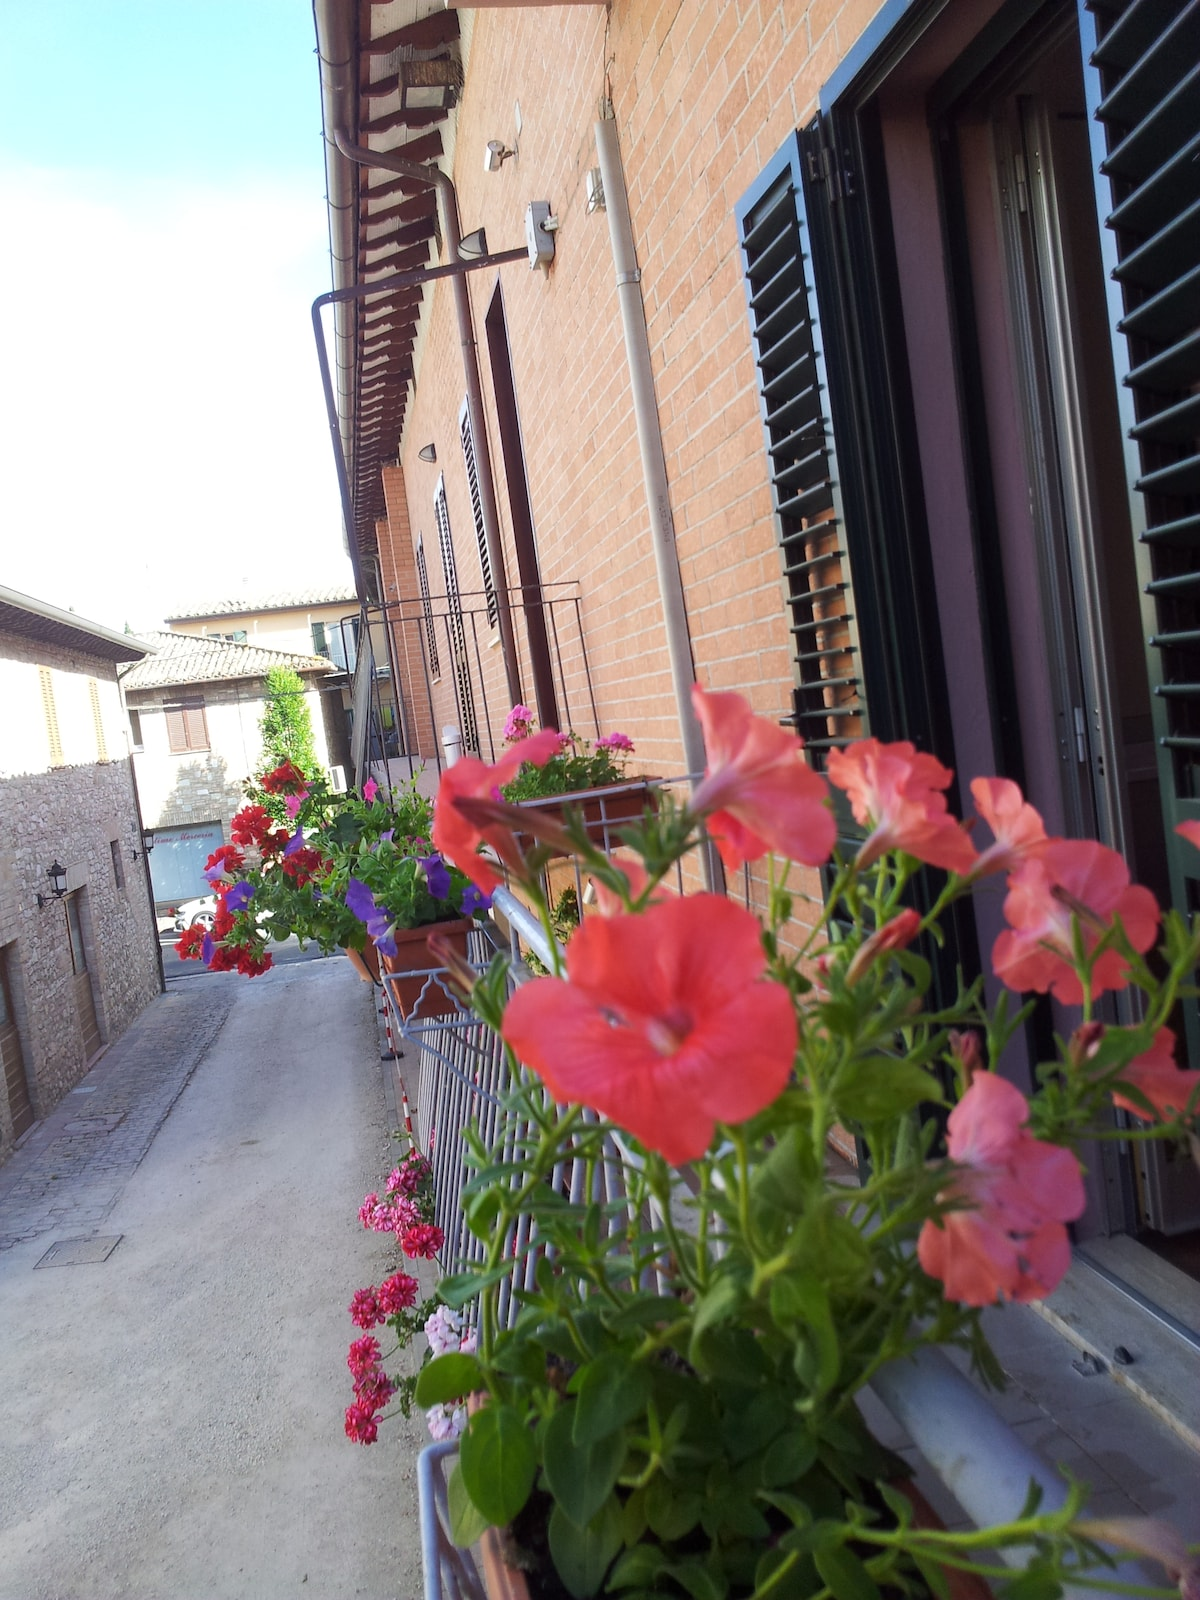 Camera quadrupla Il Balcone -Assisi